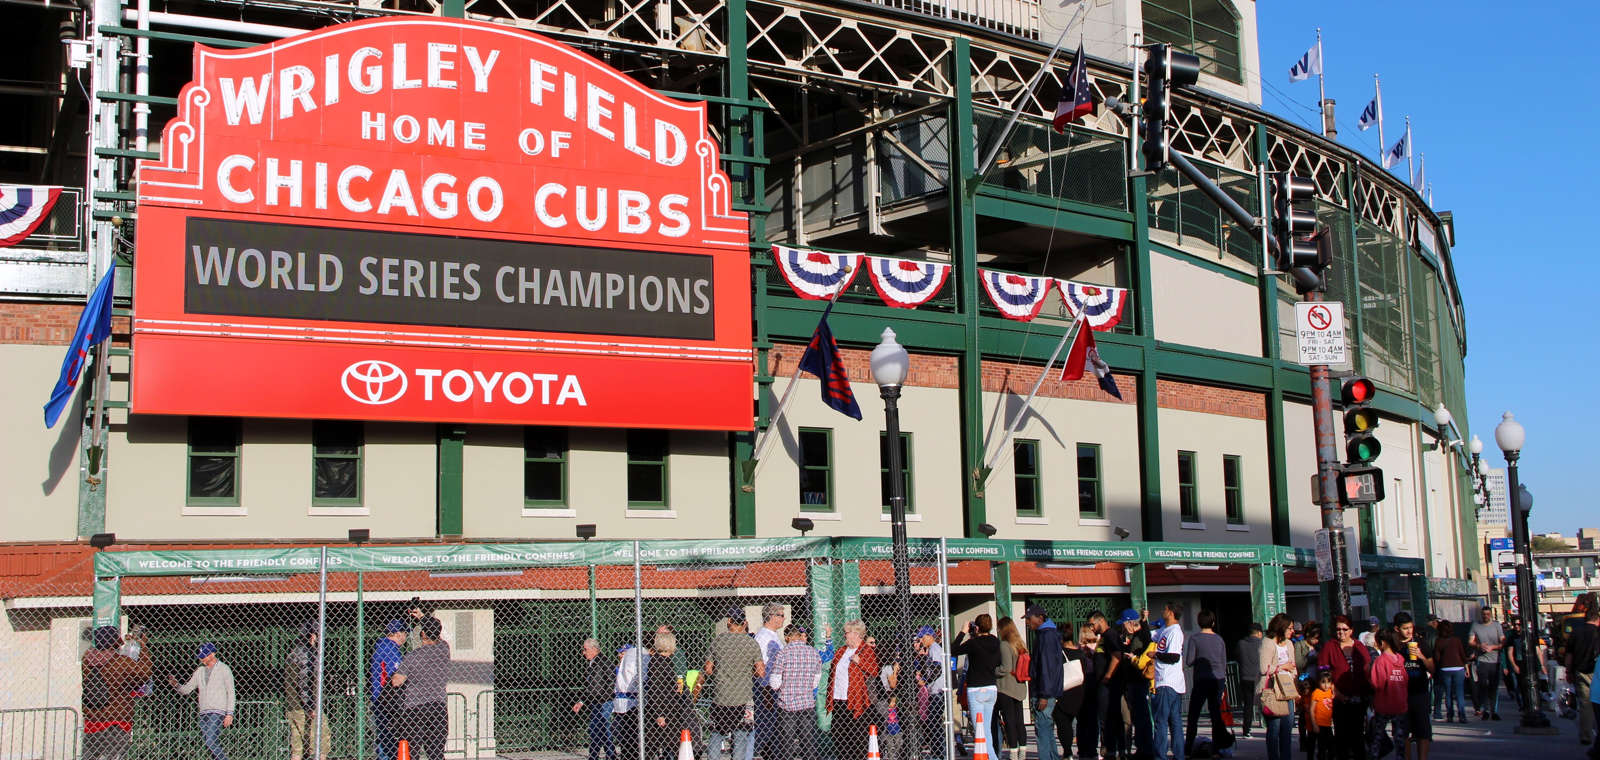 Hotel Lincoln_Wrigley_Cubs World Series Sign Left